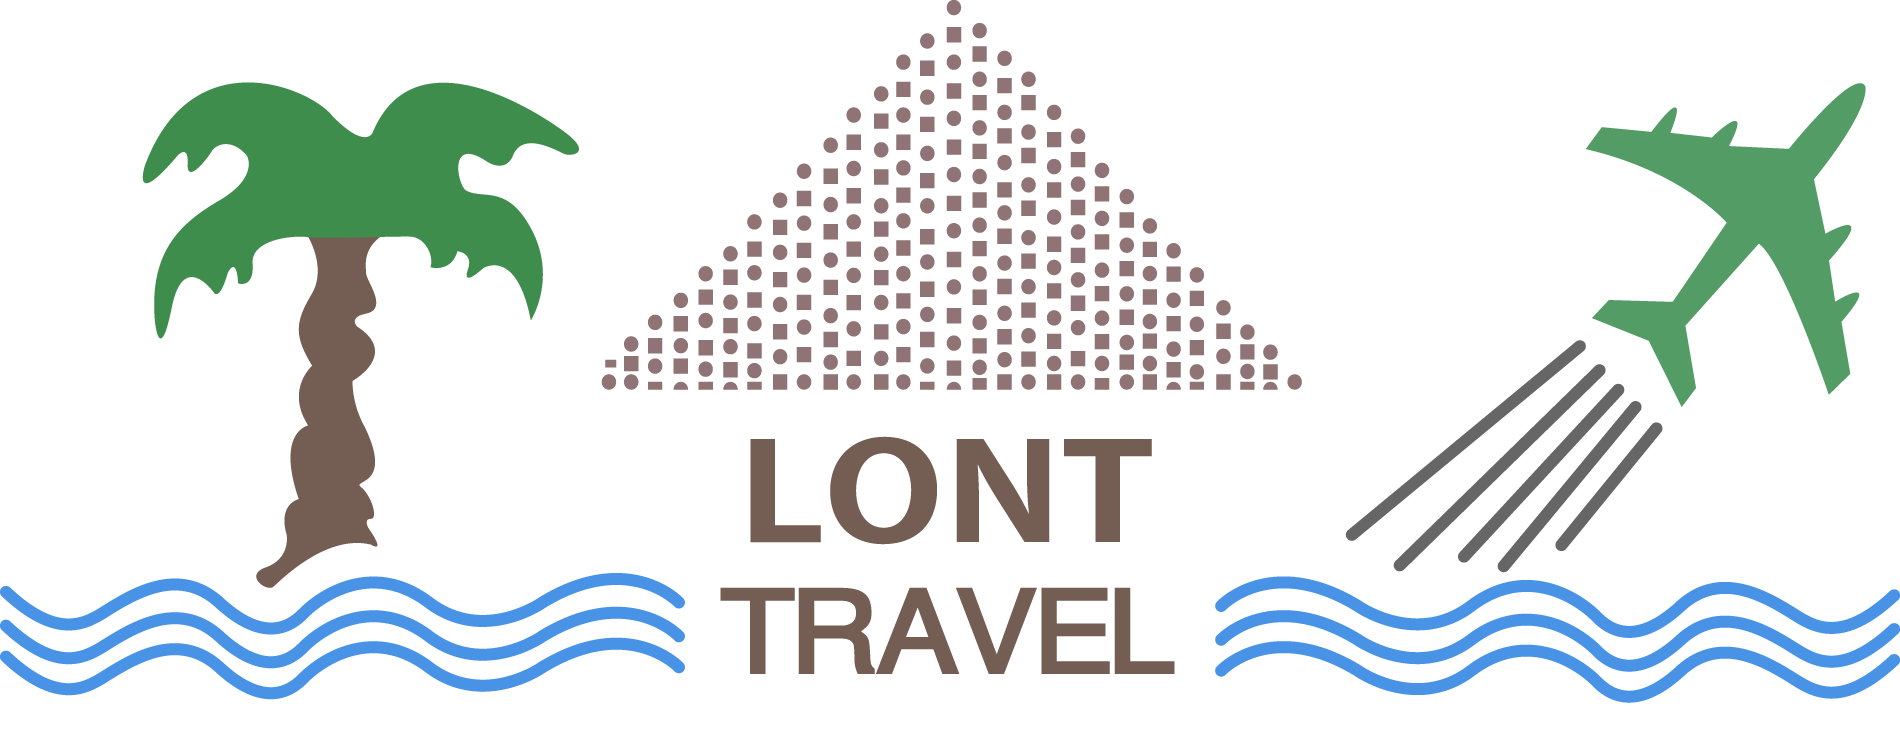 Lont Travel